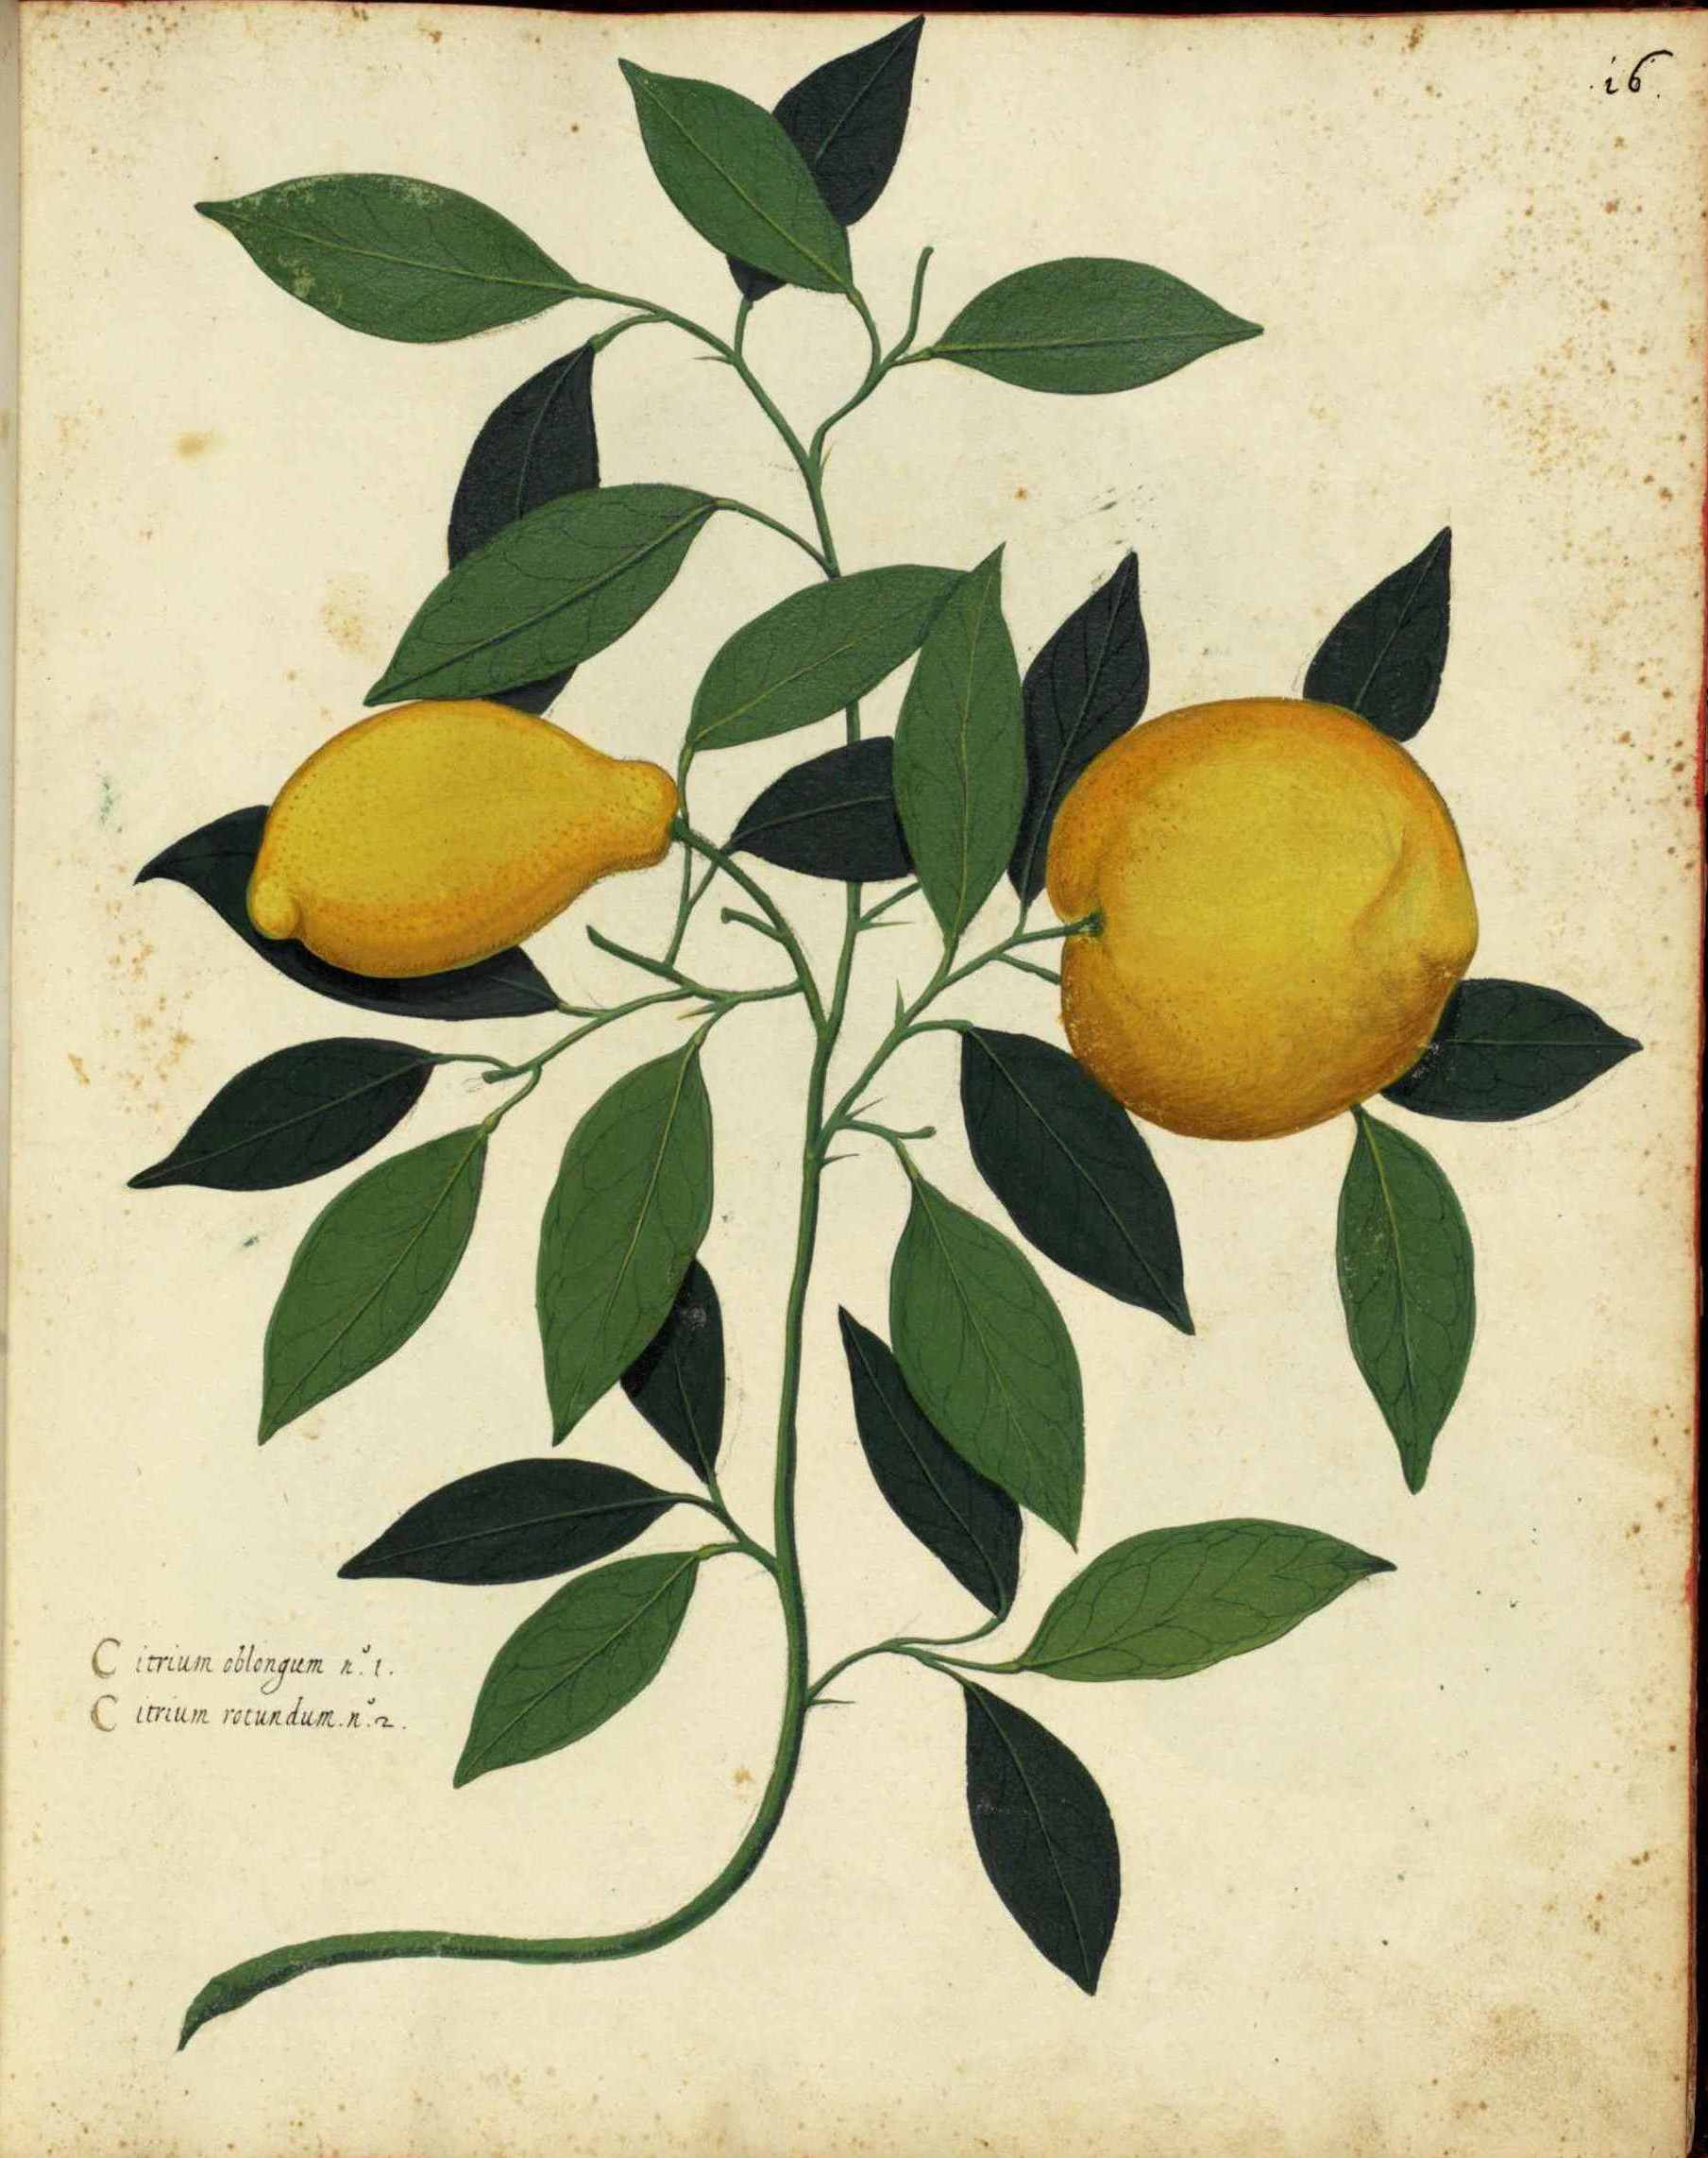 Botanical-Fruit-Lemon-Italian